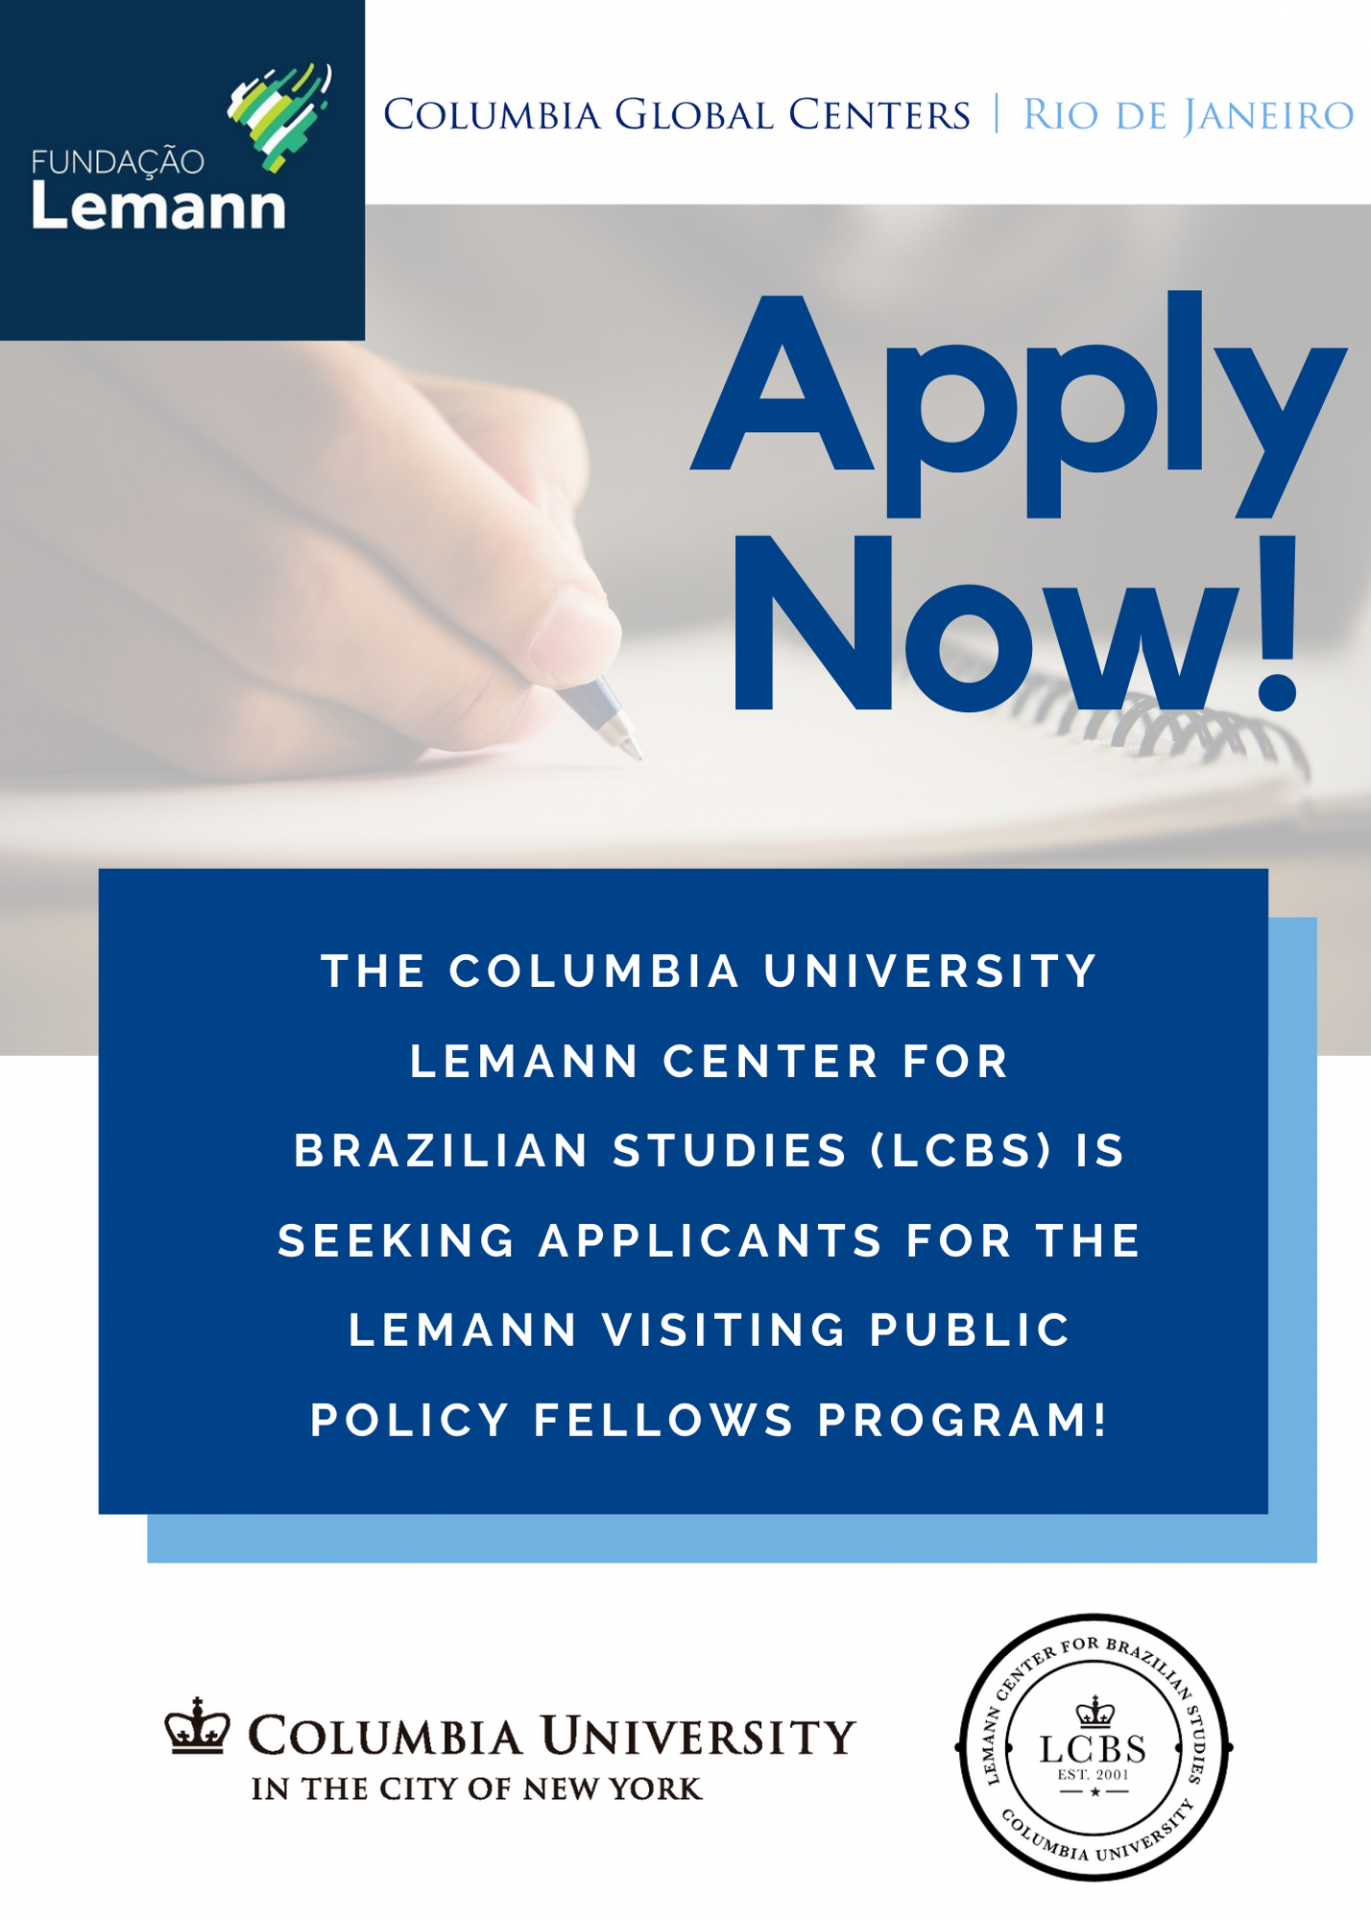 Lemann Visiting Public Policy Fellows Program at Columbia University Call for Applications